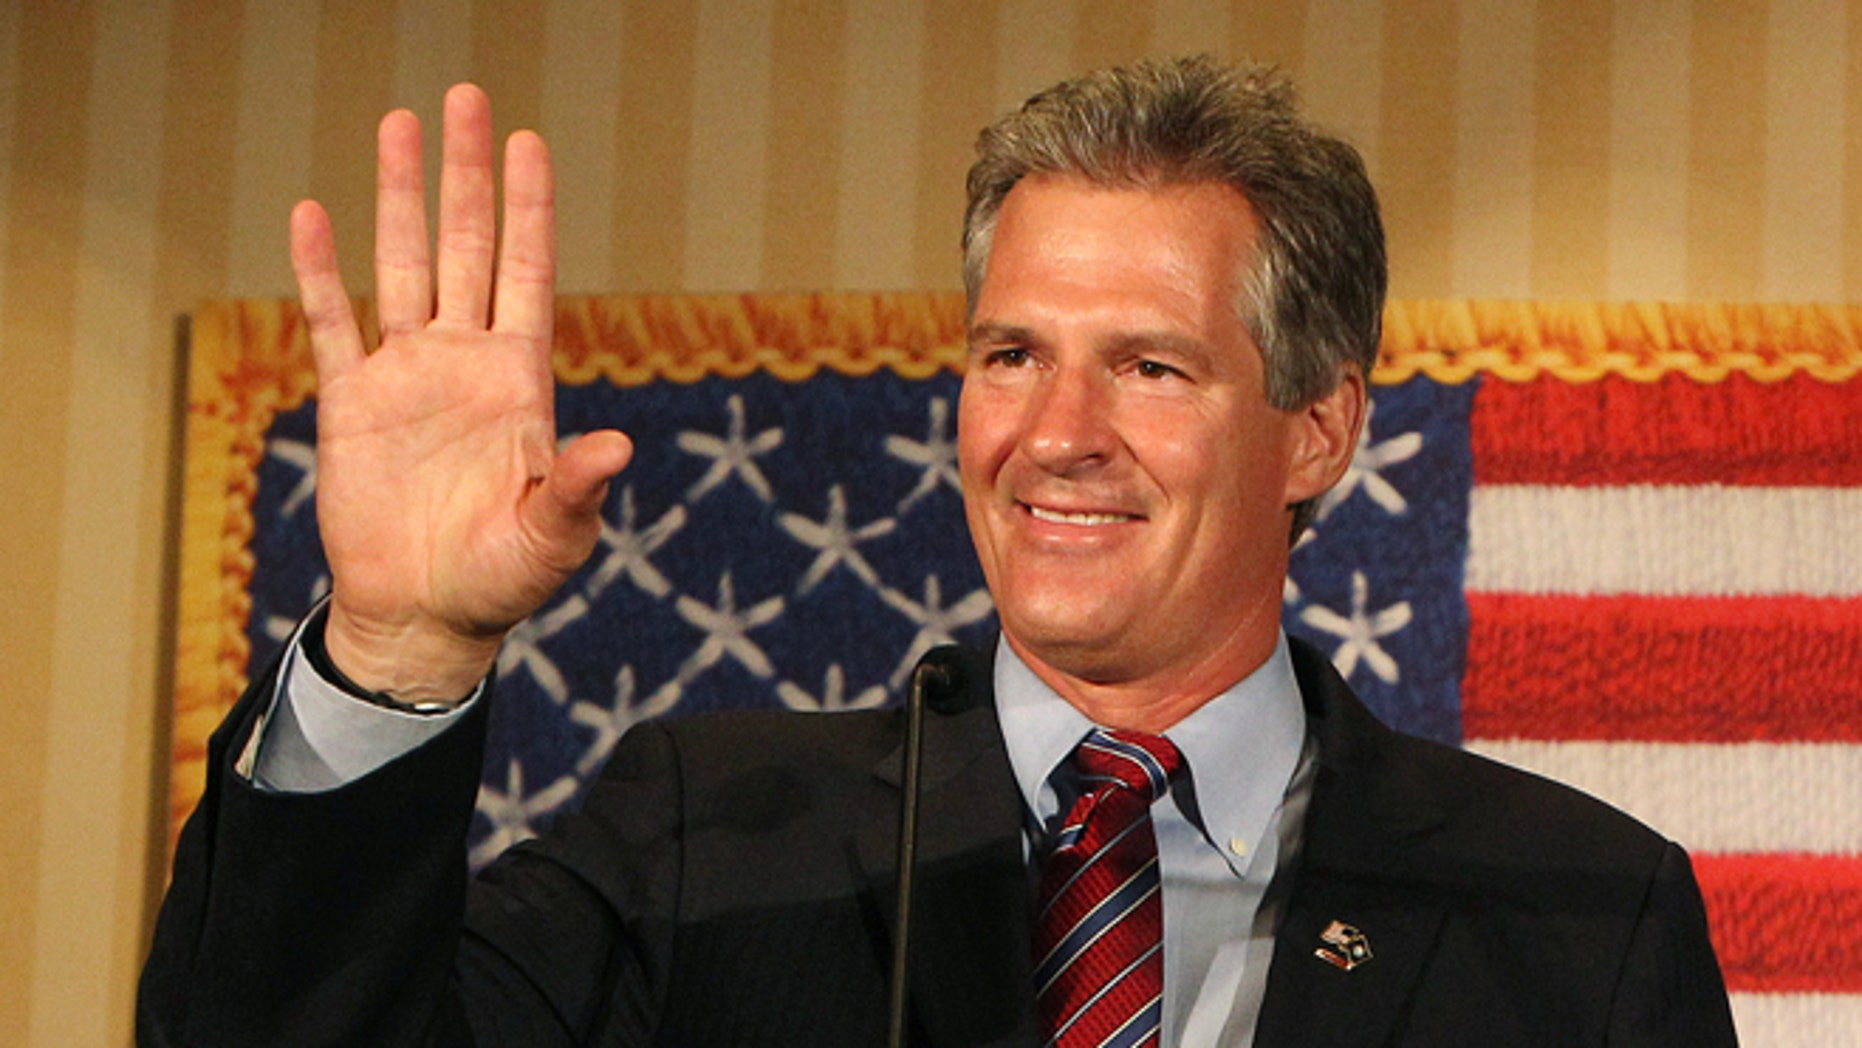 In this Tuesday, Sept. 9, 2014 photo, Scott Brown waves to supporters in Concord, N.H. after winning New Hampshire's Republican U.S. Senate primary.